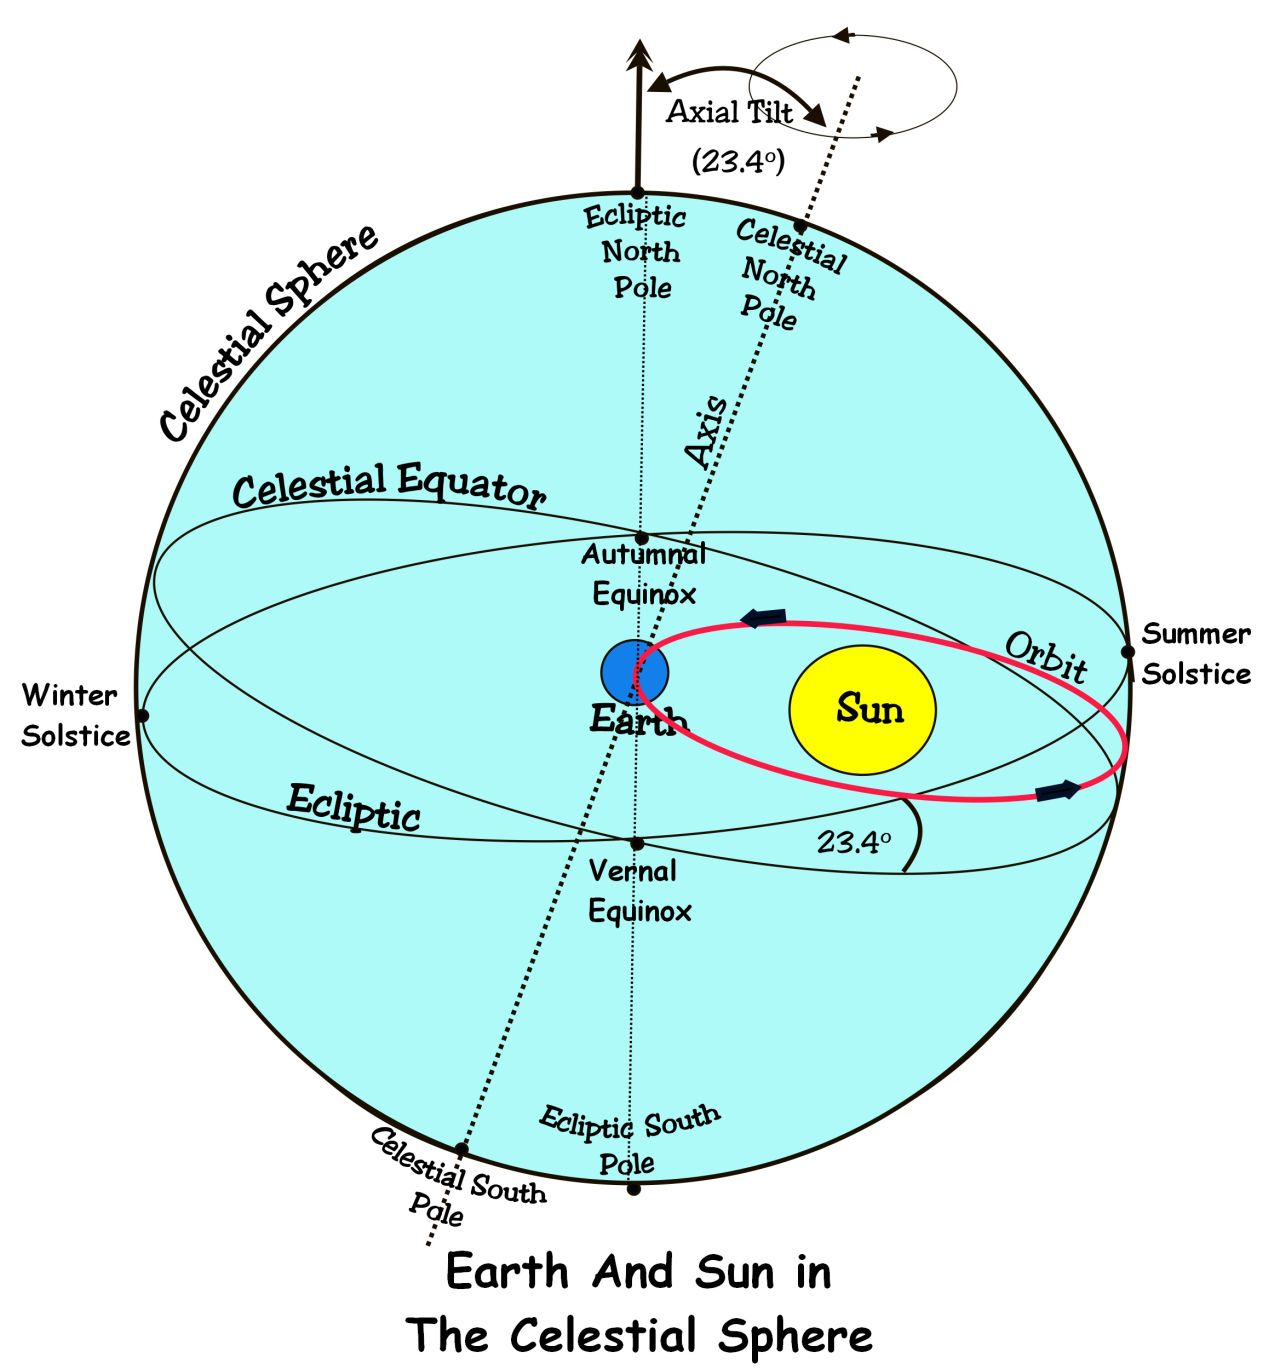 The Ecliptic The Age Of Aquarius And The Tropics